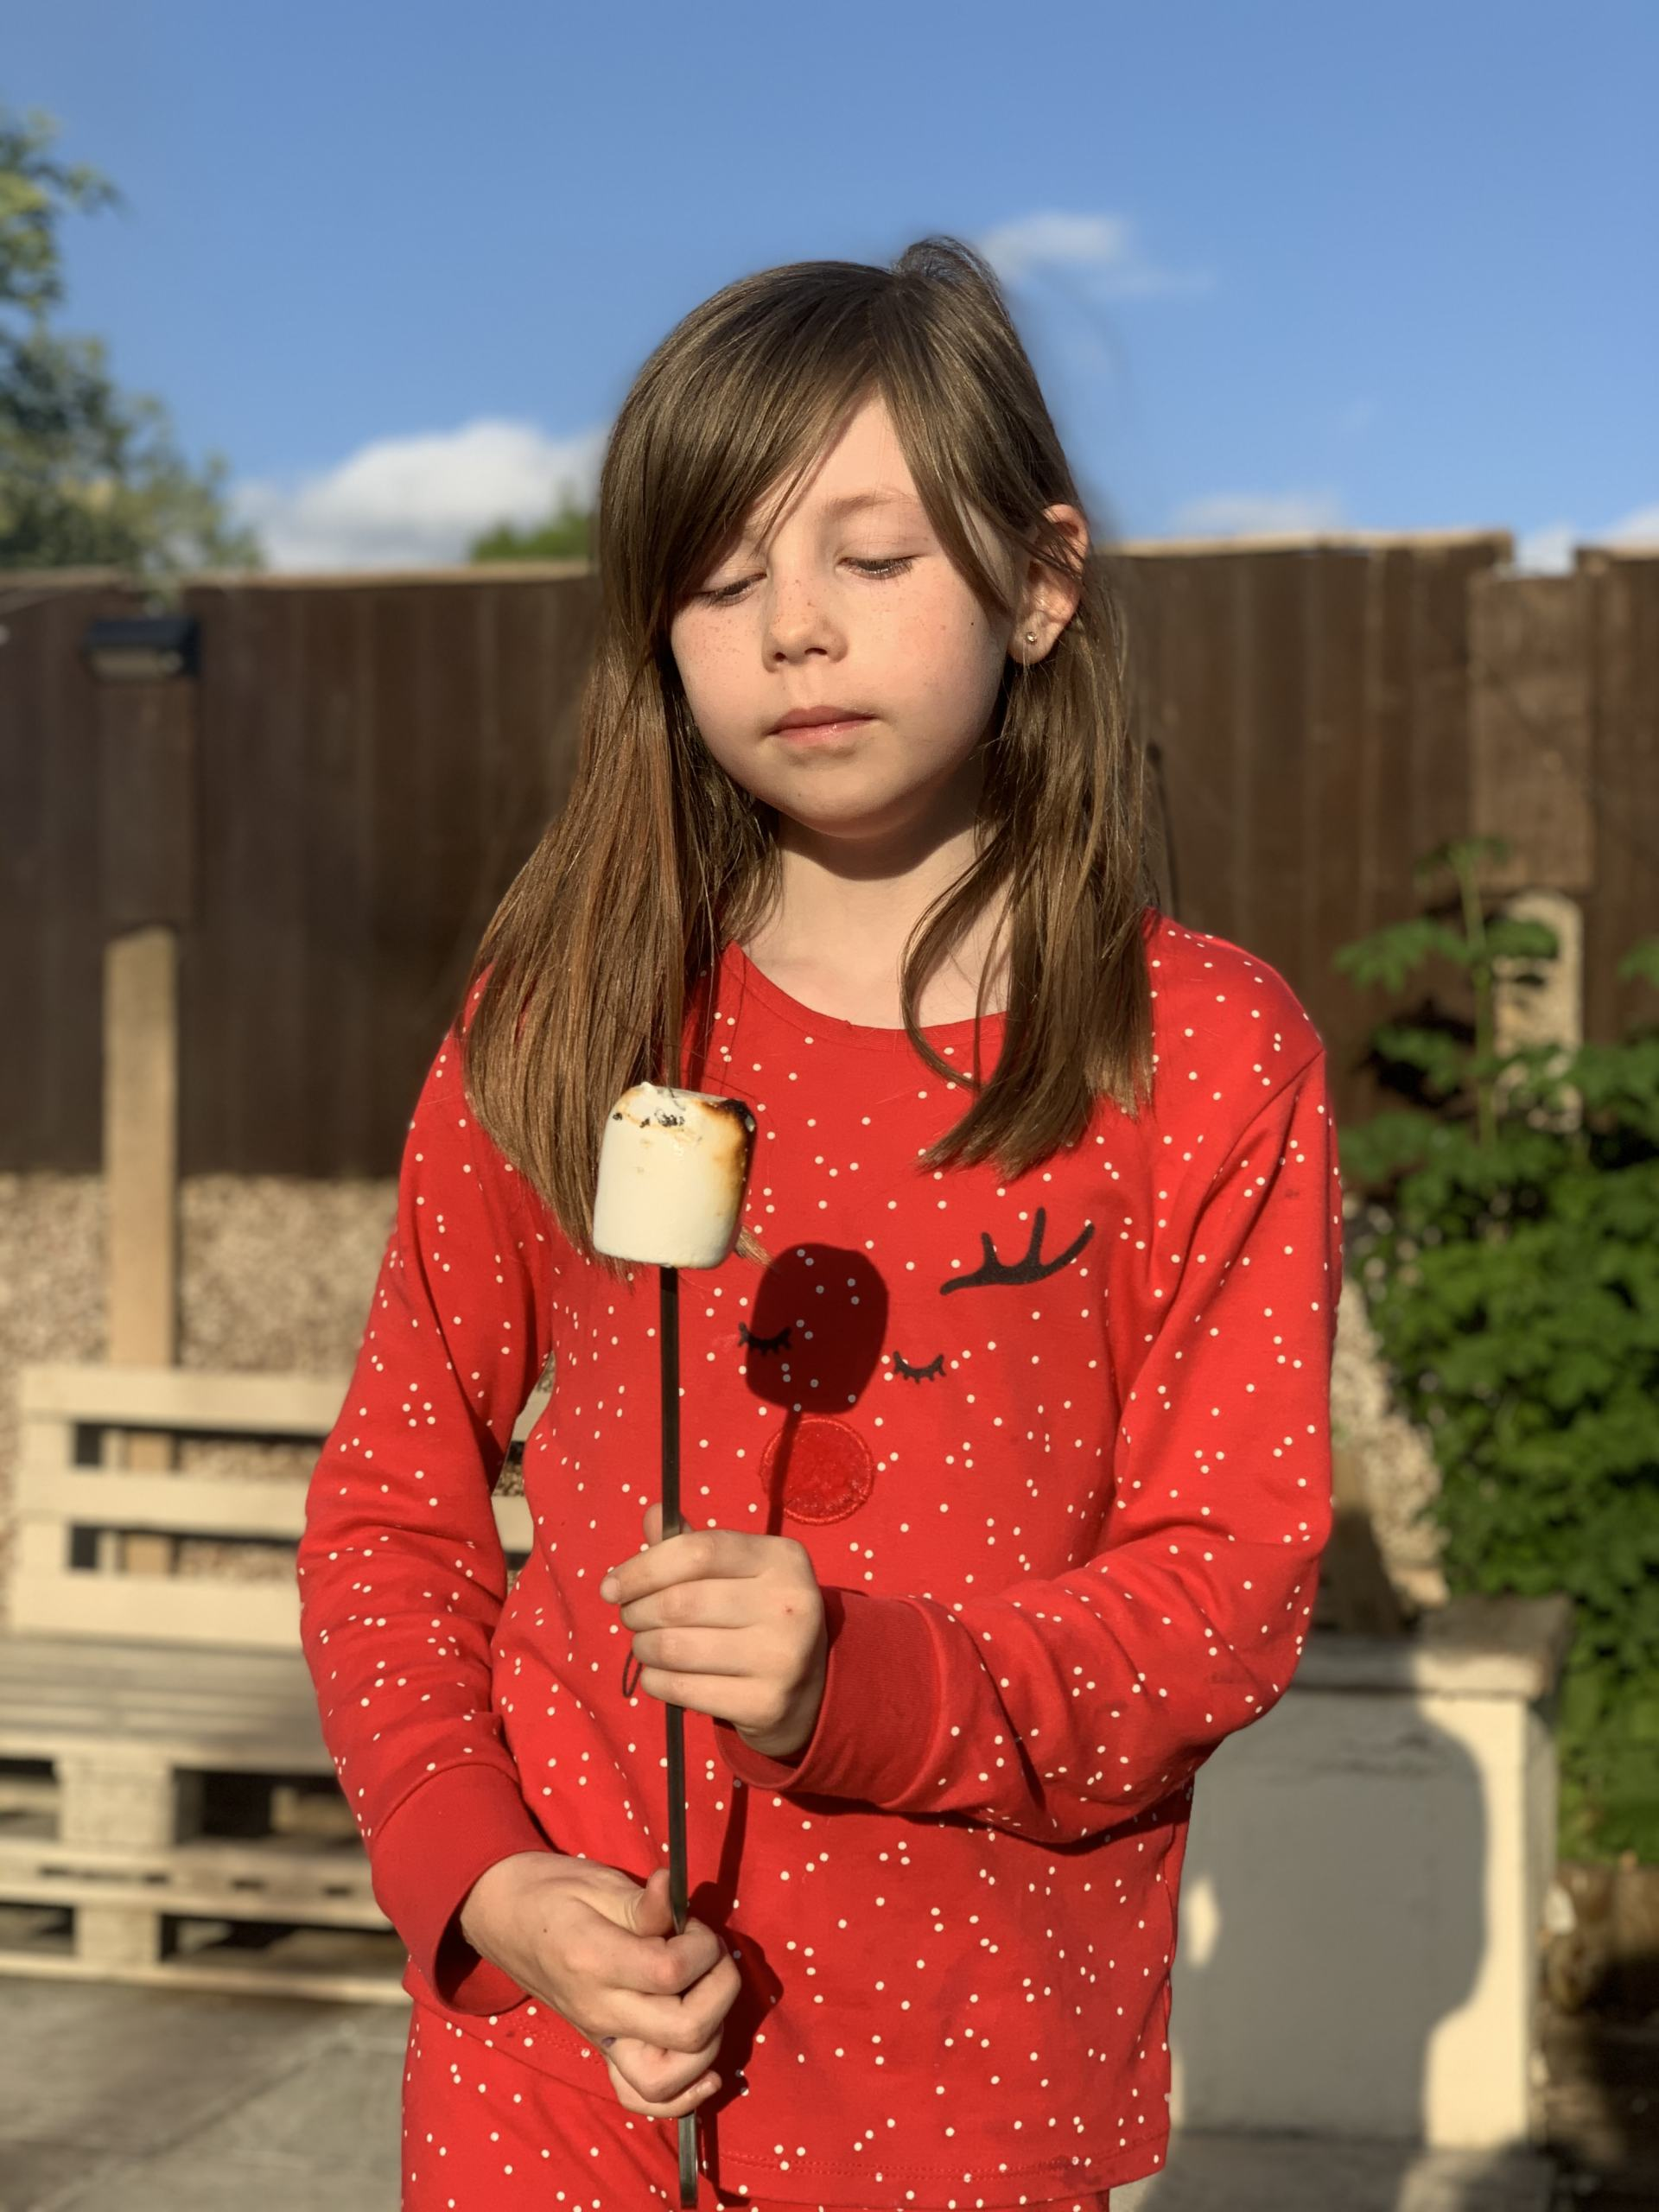 8 year old girl staring at a toasted marshmallow outside with blue sky behind her